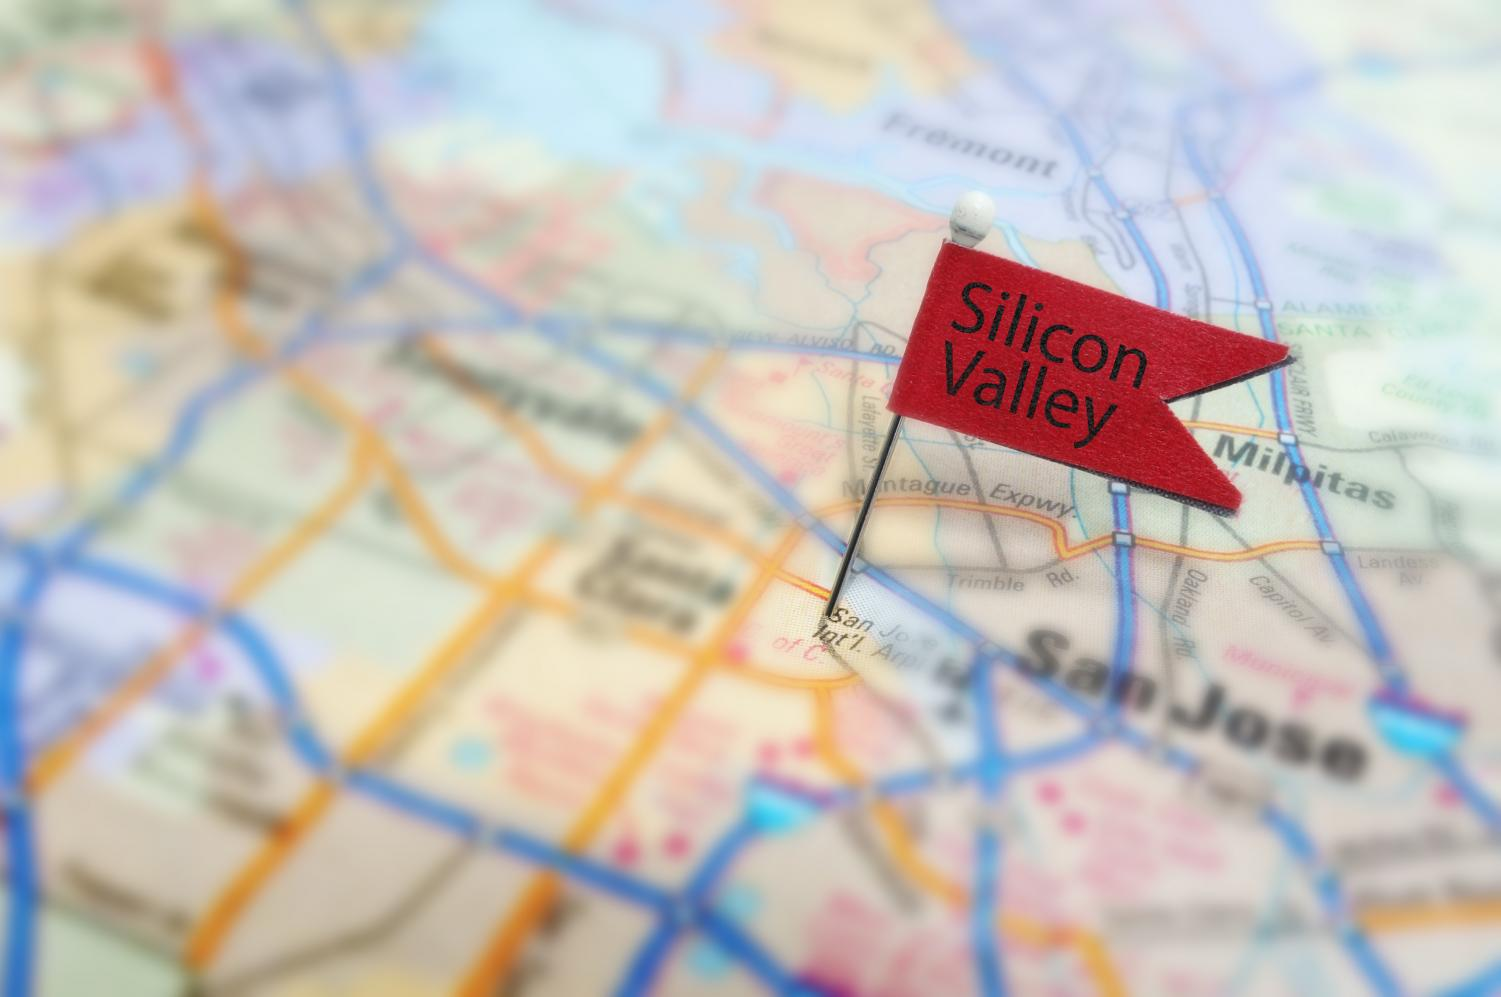 Silicon Valley holds so much potential, and HBO's comedy based on the area does not disappoint. Image courtesy of CanStockPhoto (CanStockPhoto.com)